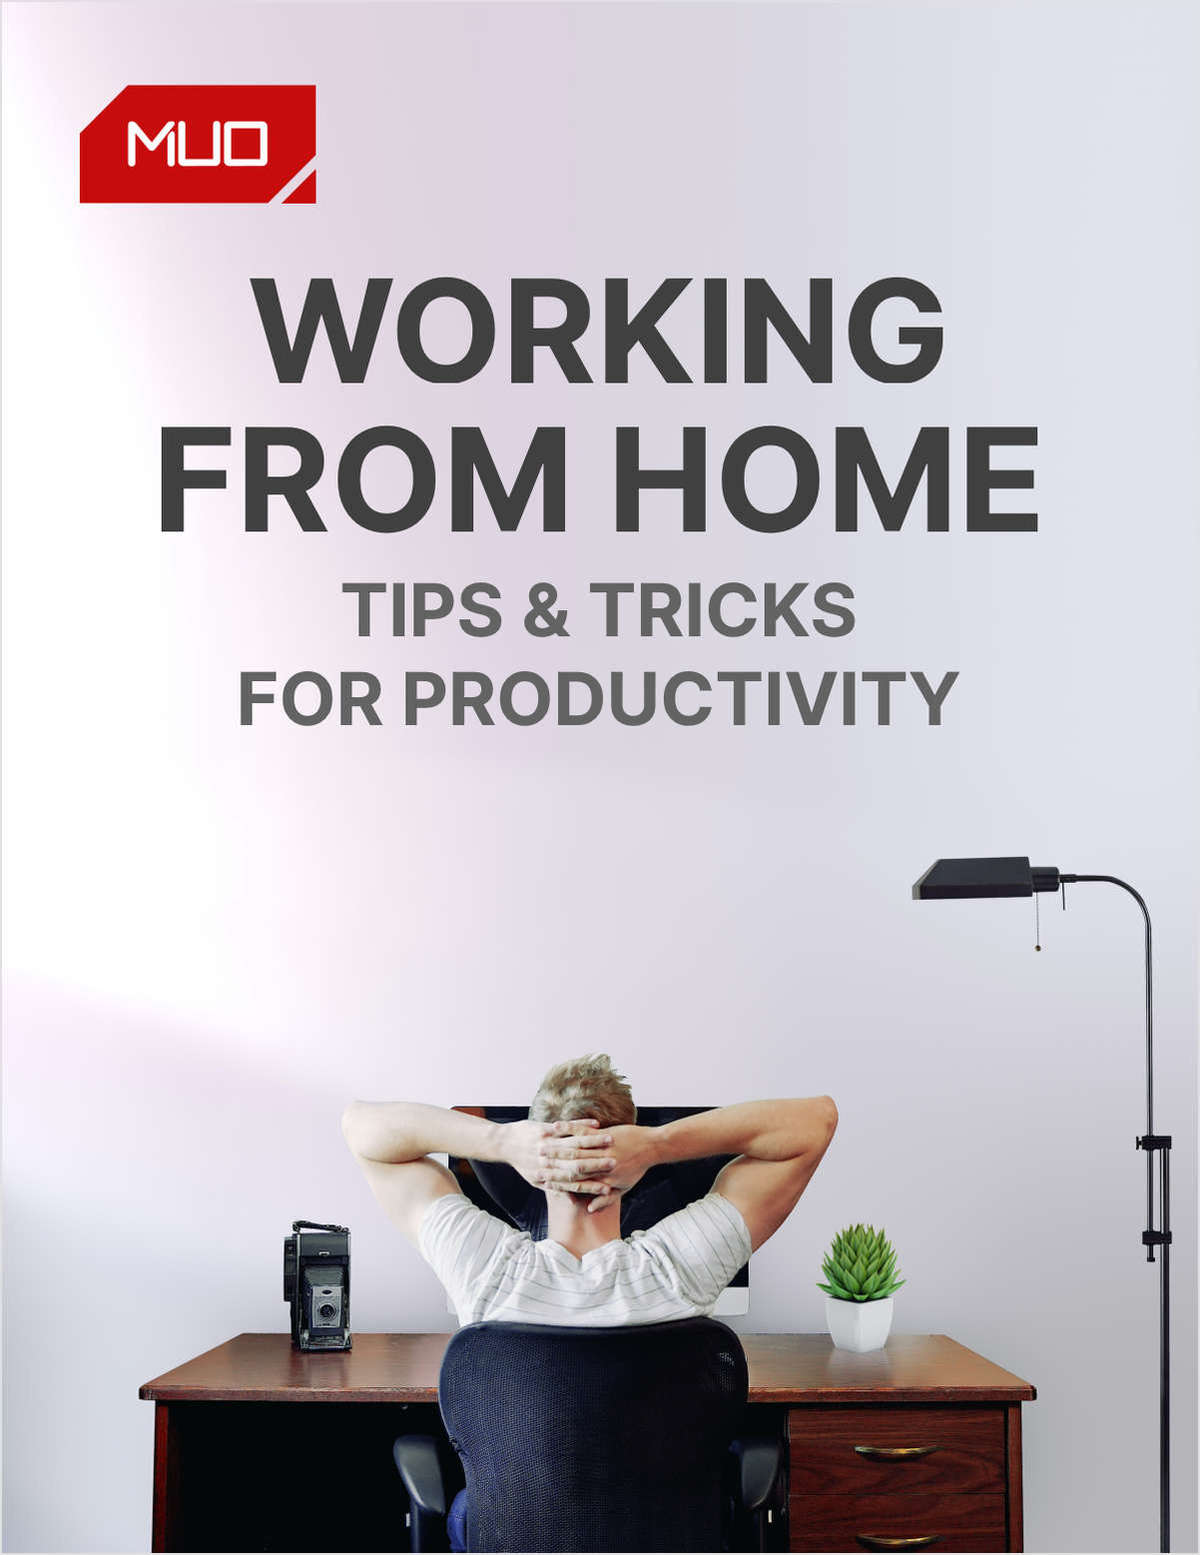 90 Ways to Stay Productive When Working From Home ebook guide by MakeUseOf